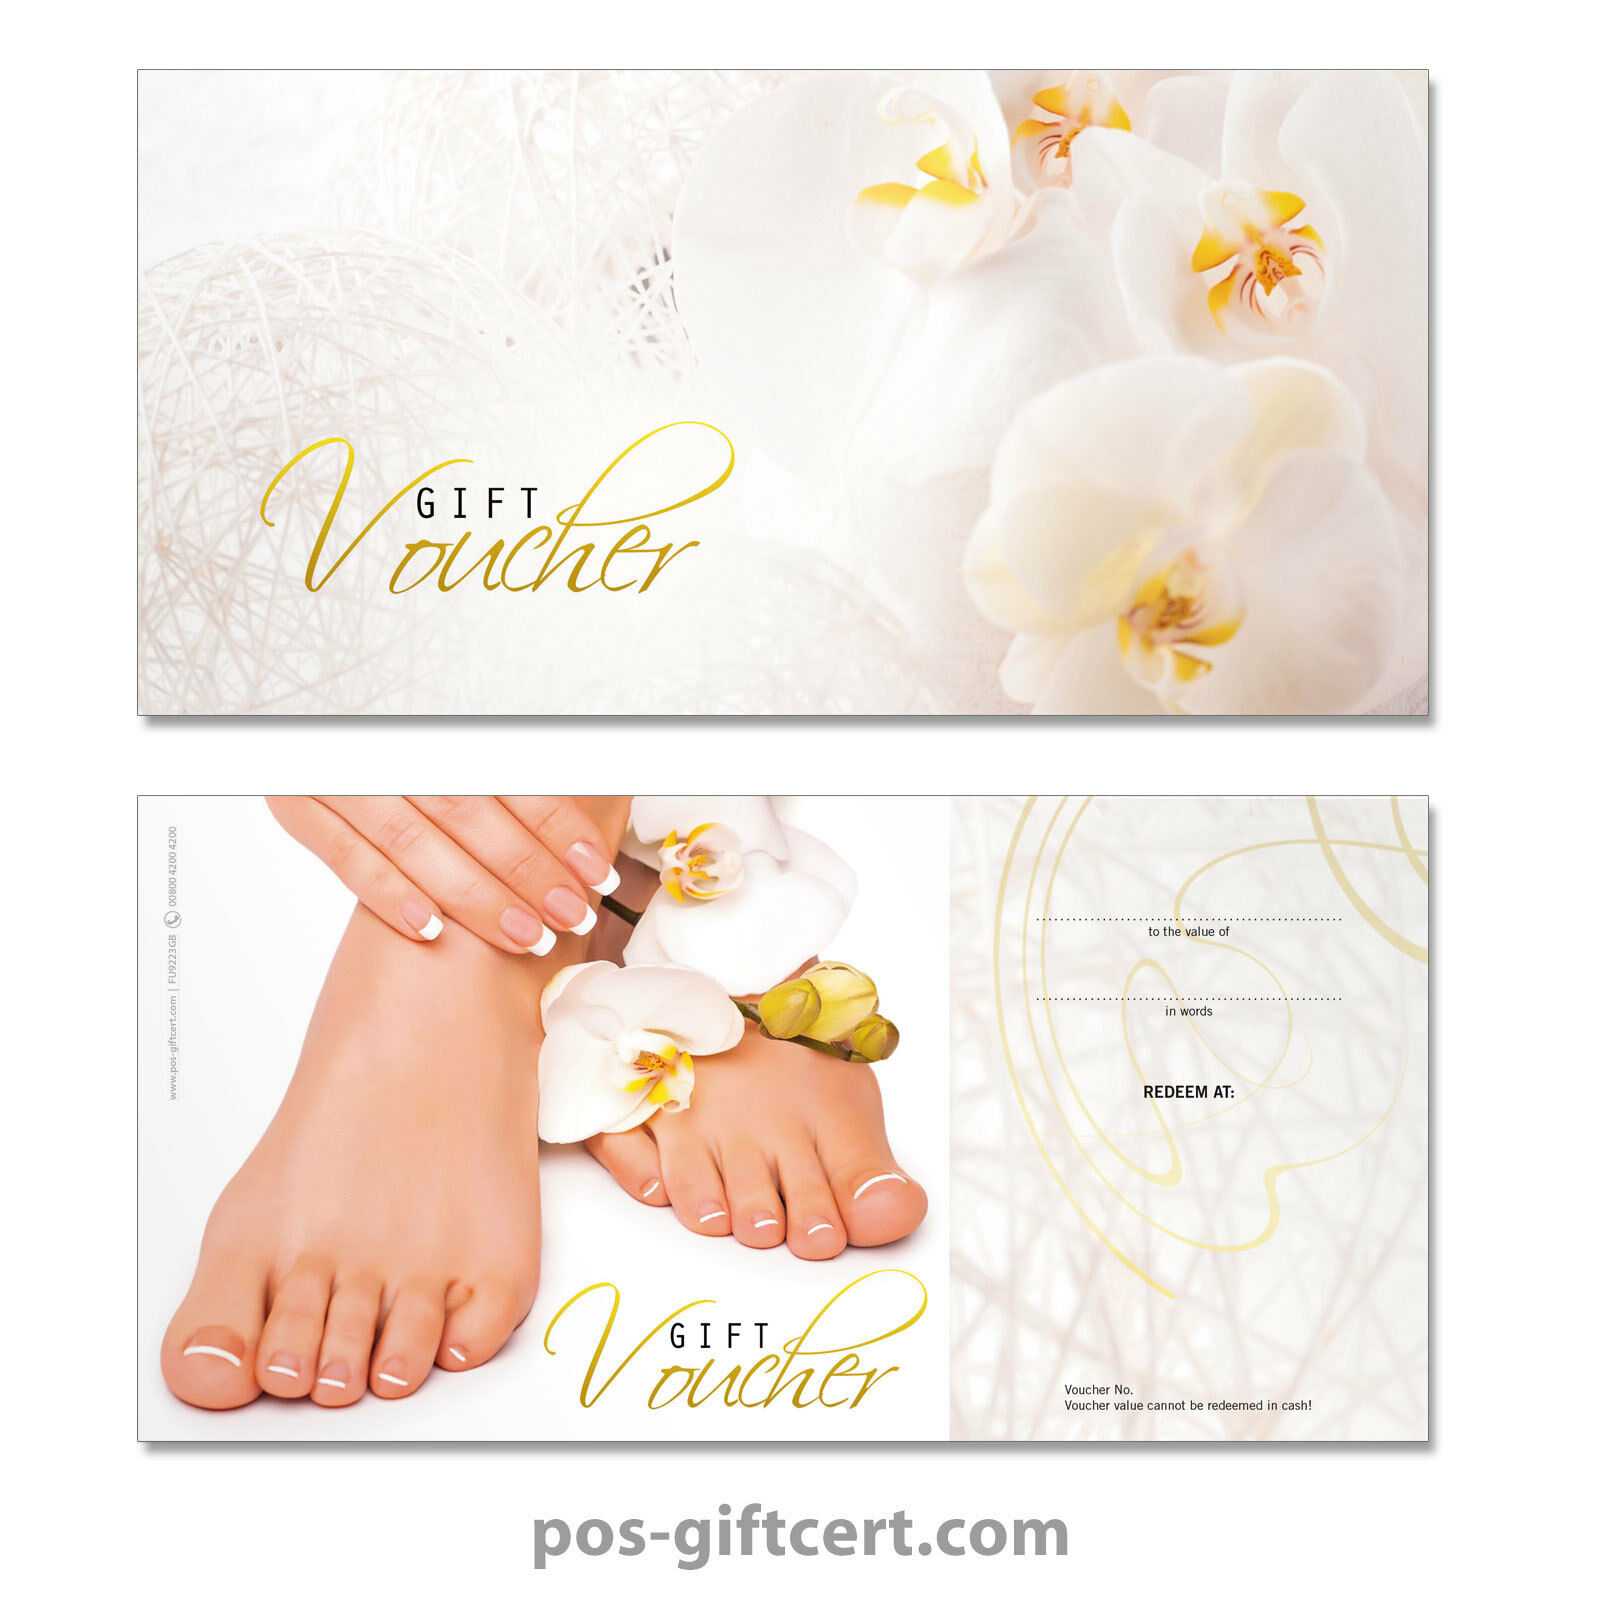 Gift vouchers for foot and nail care, pedicure, podiatry FU9223GB | Deutschland Shop